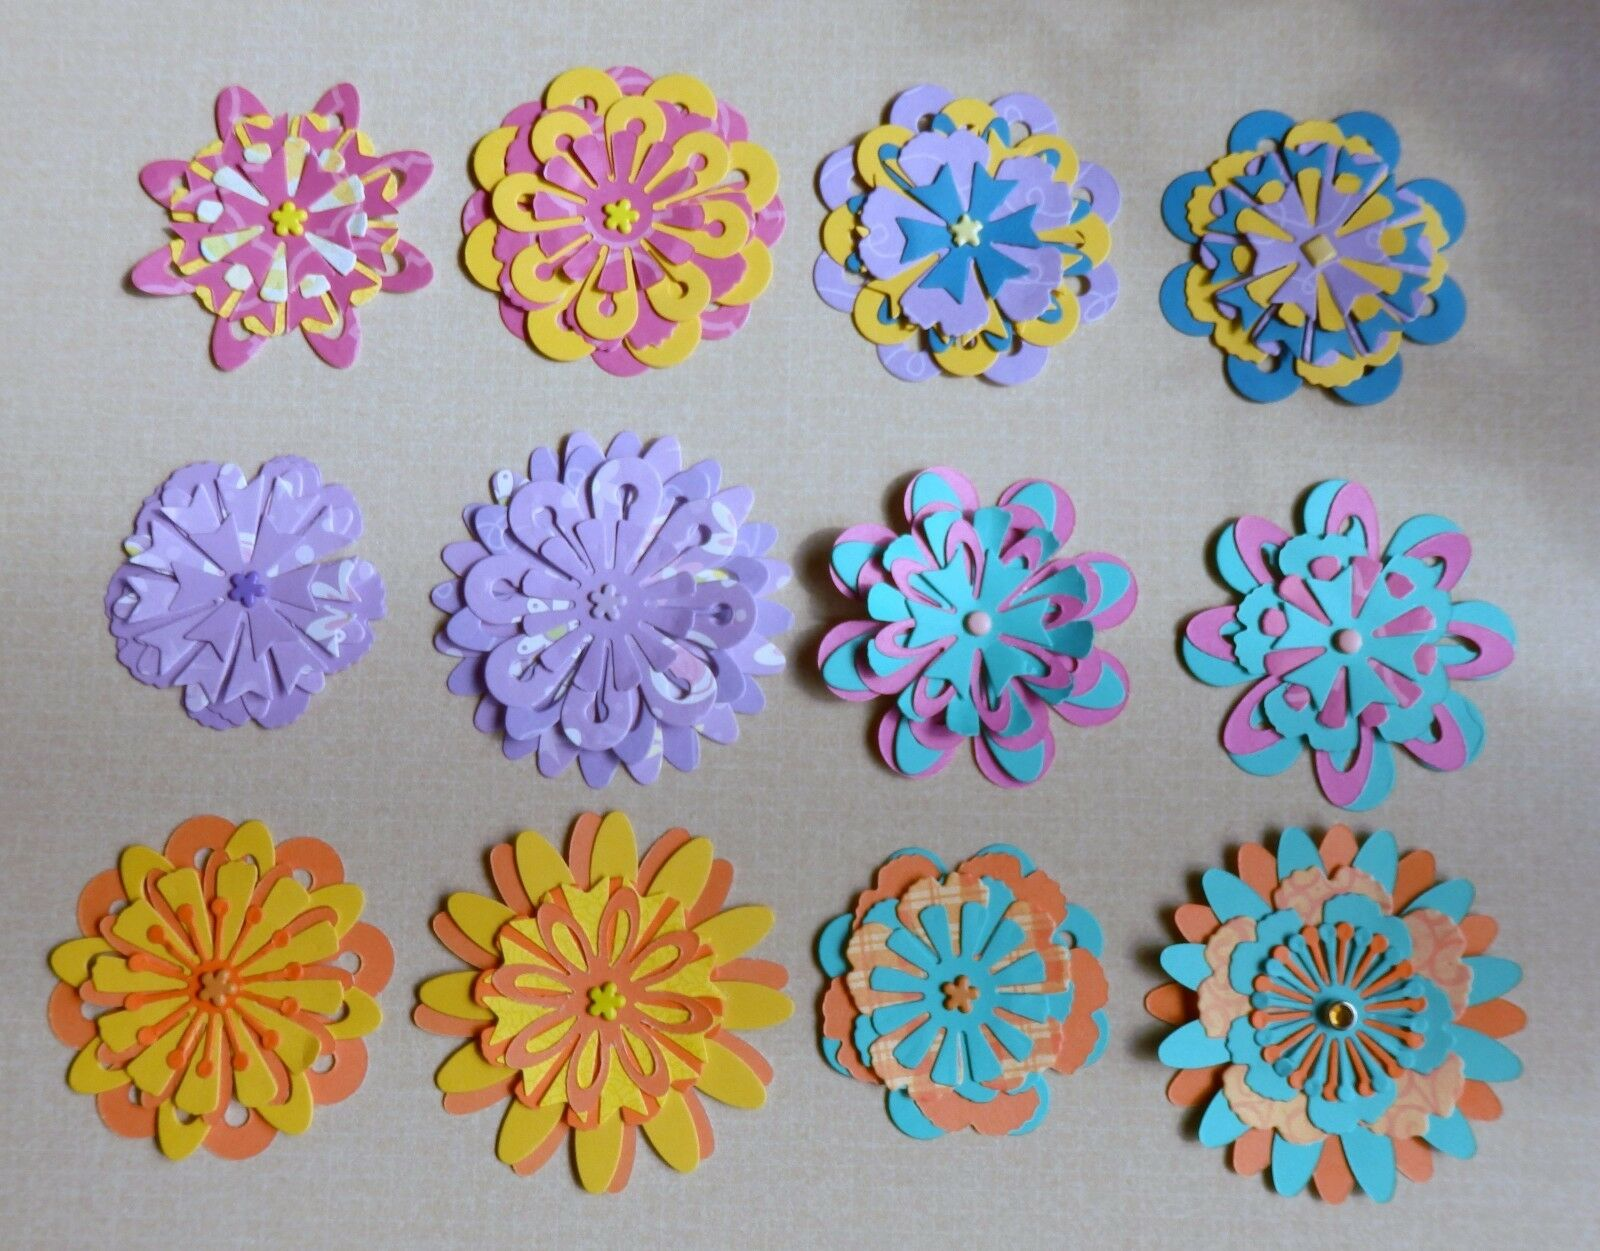 12 Handmade Layered Paper Flowers Scrapbook Layouts Card Making Home